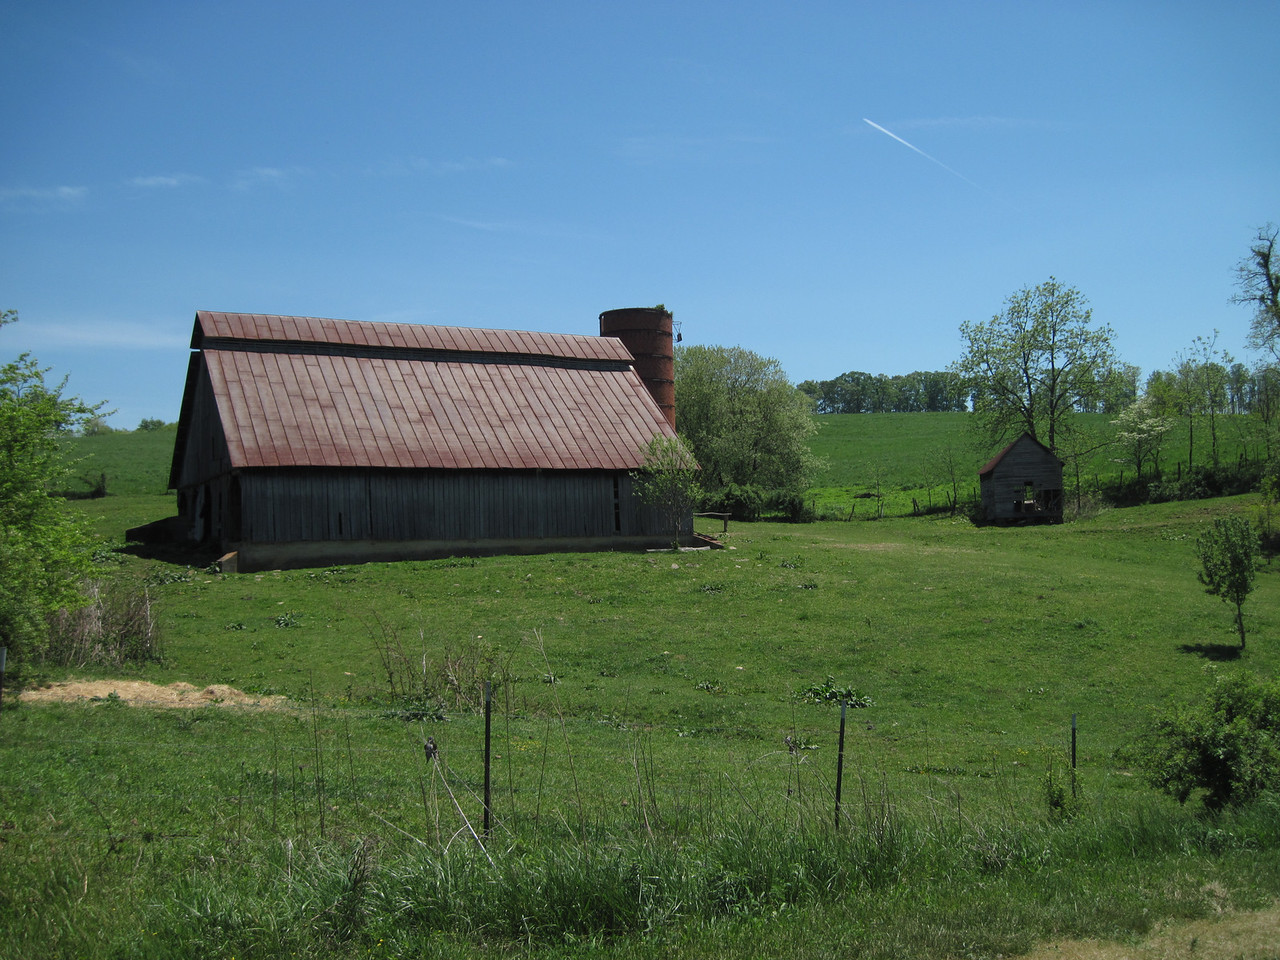 North Carolina Countryside